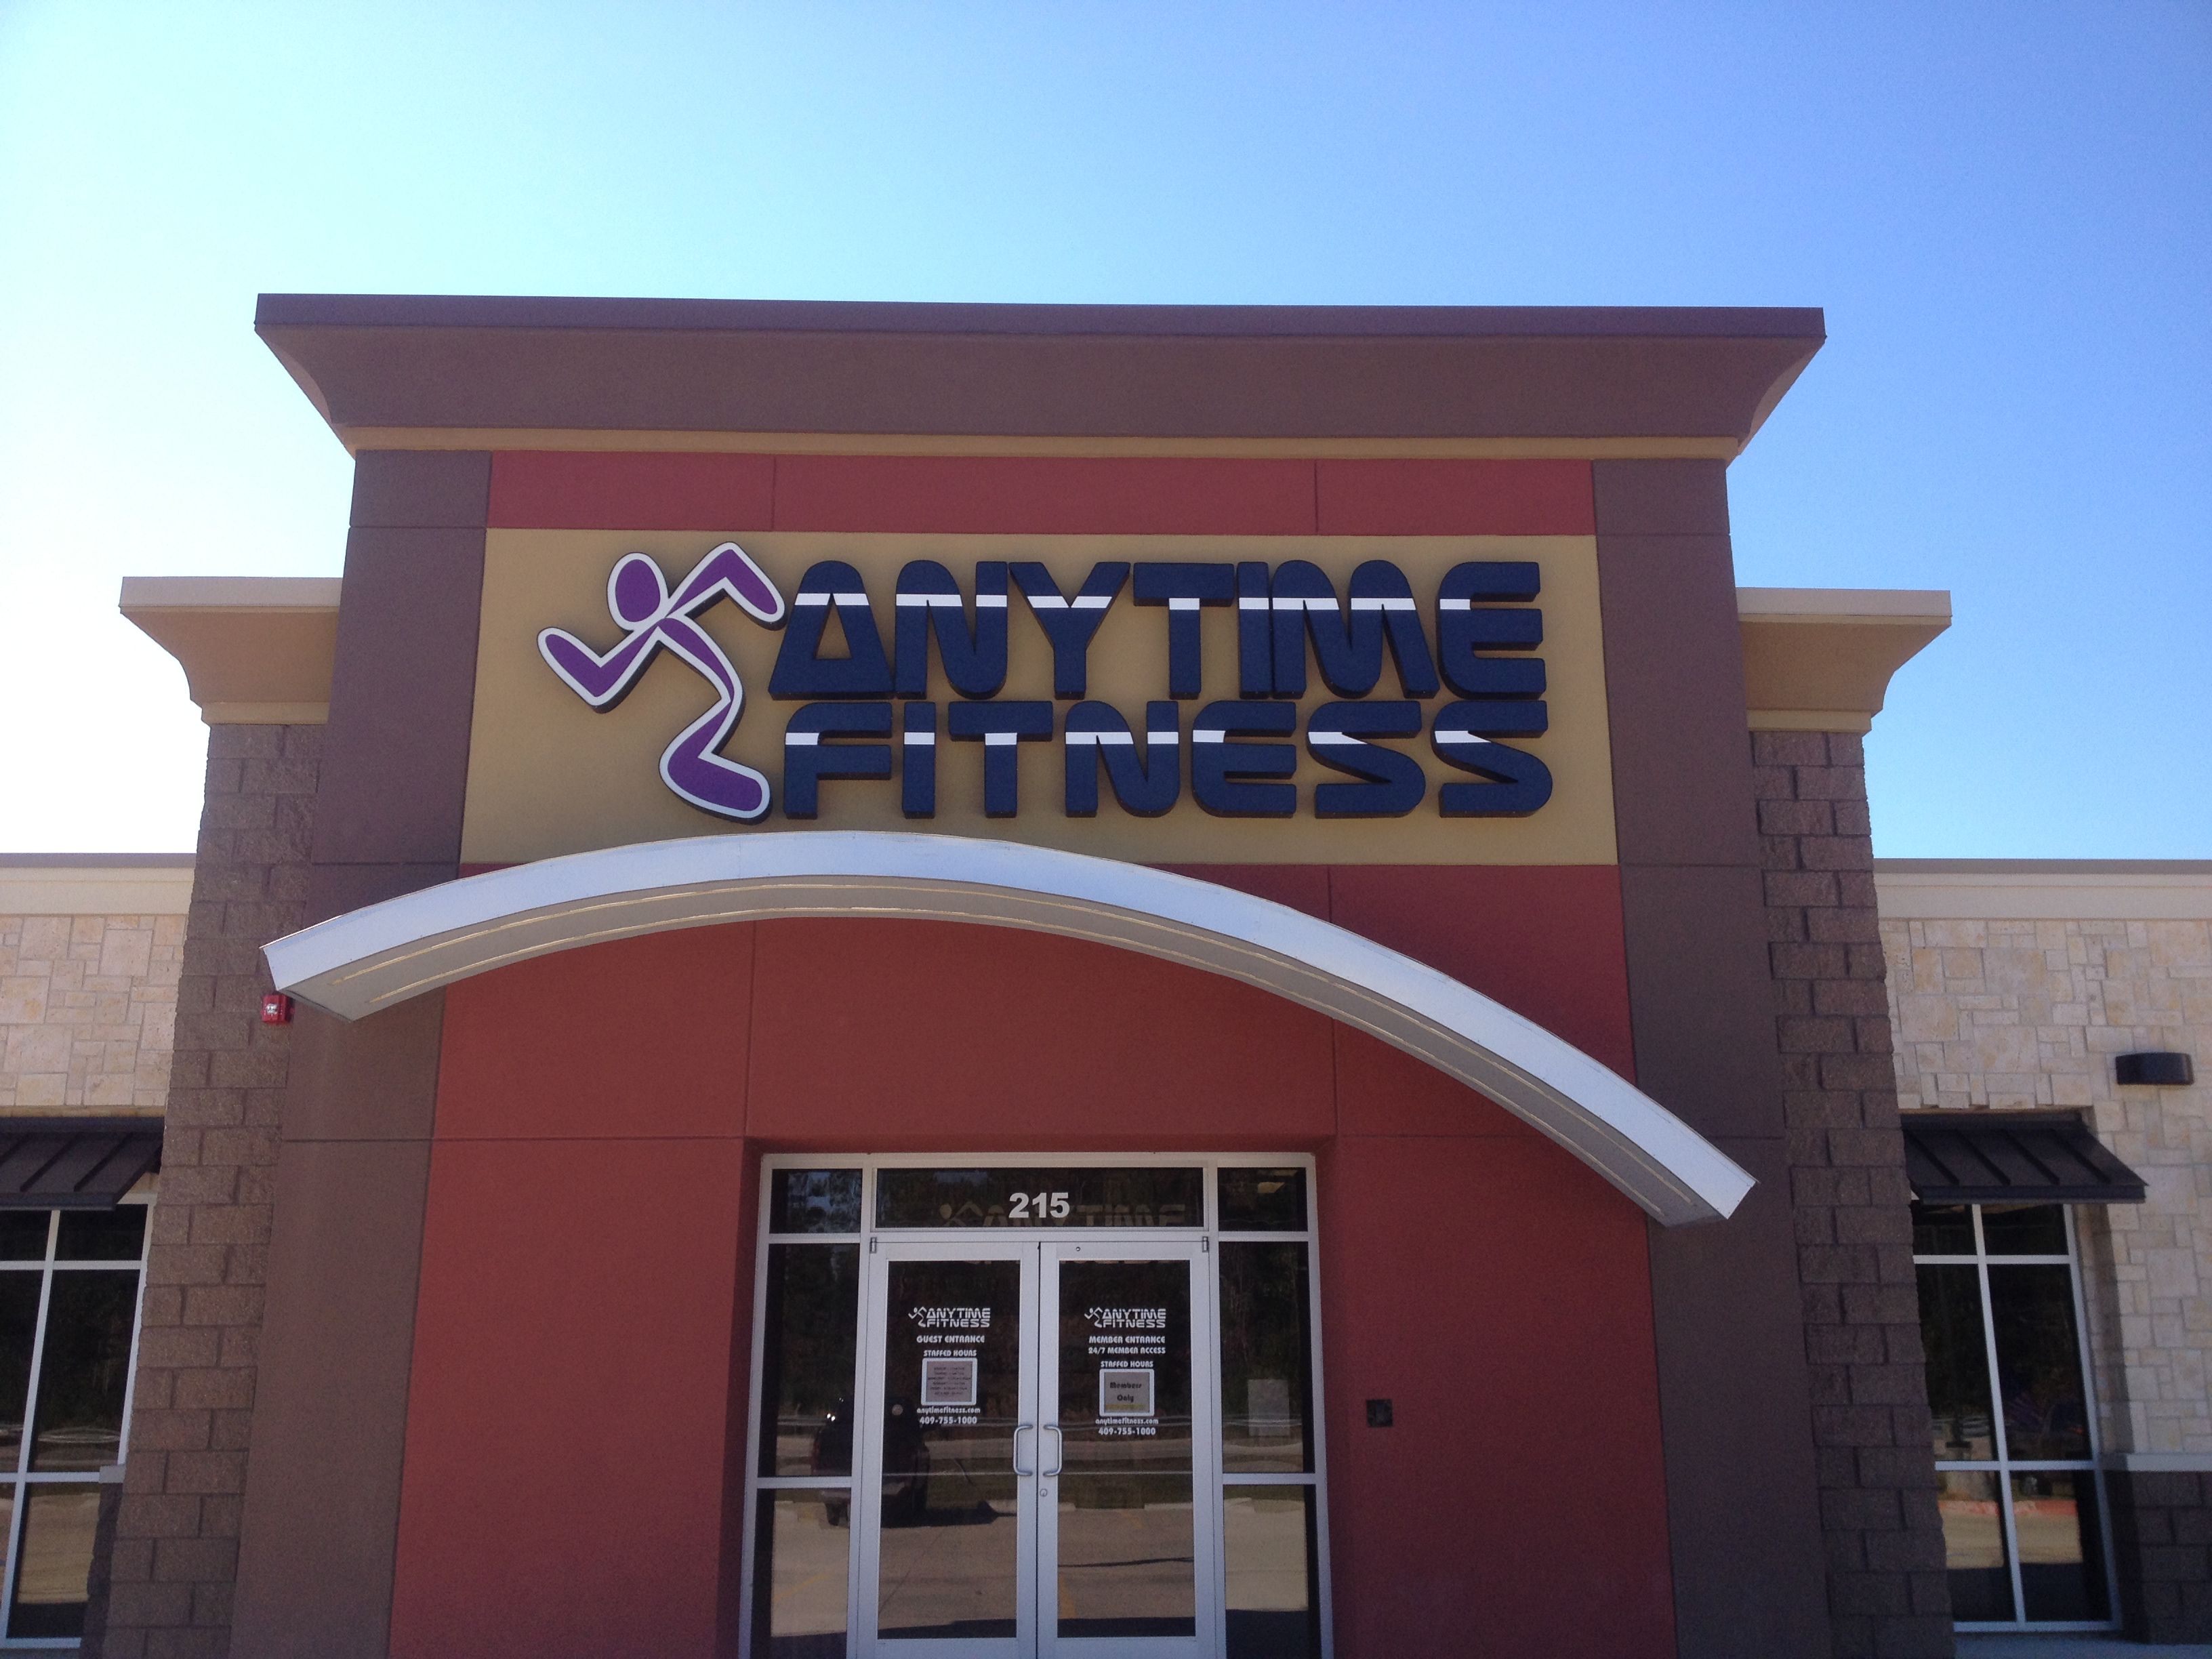 Anytime Fitness Channel Letters and Logo